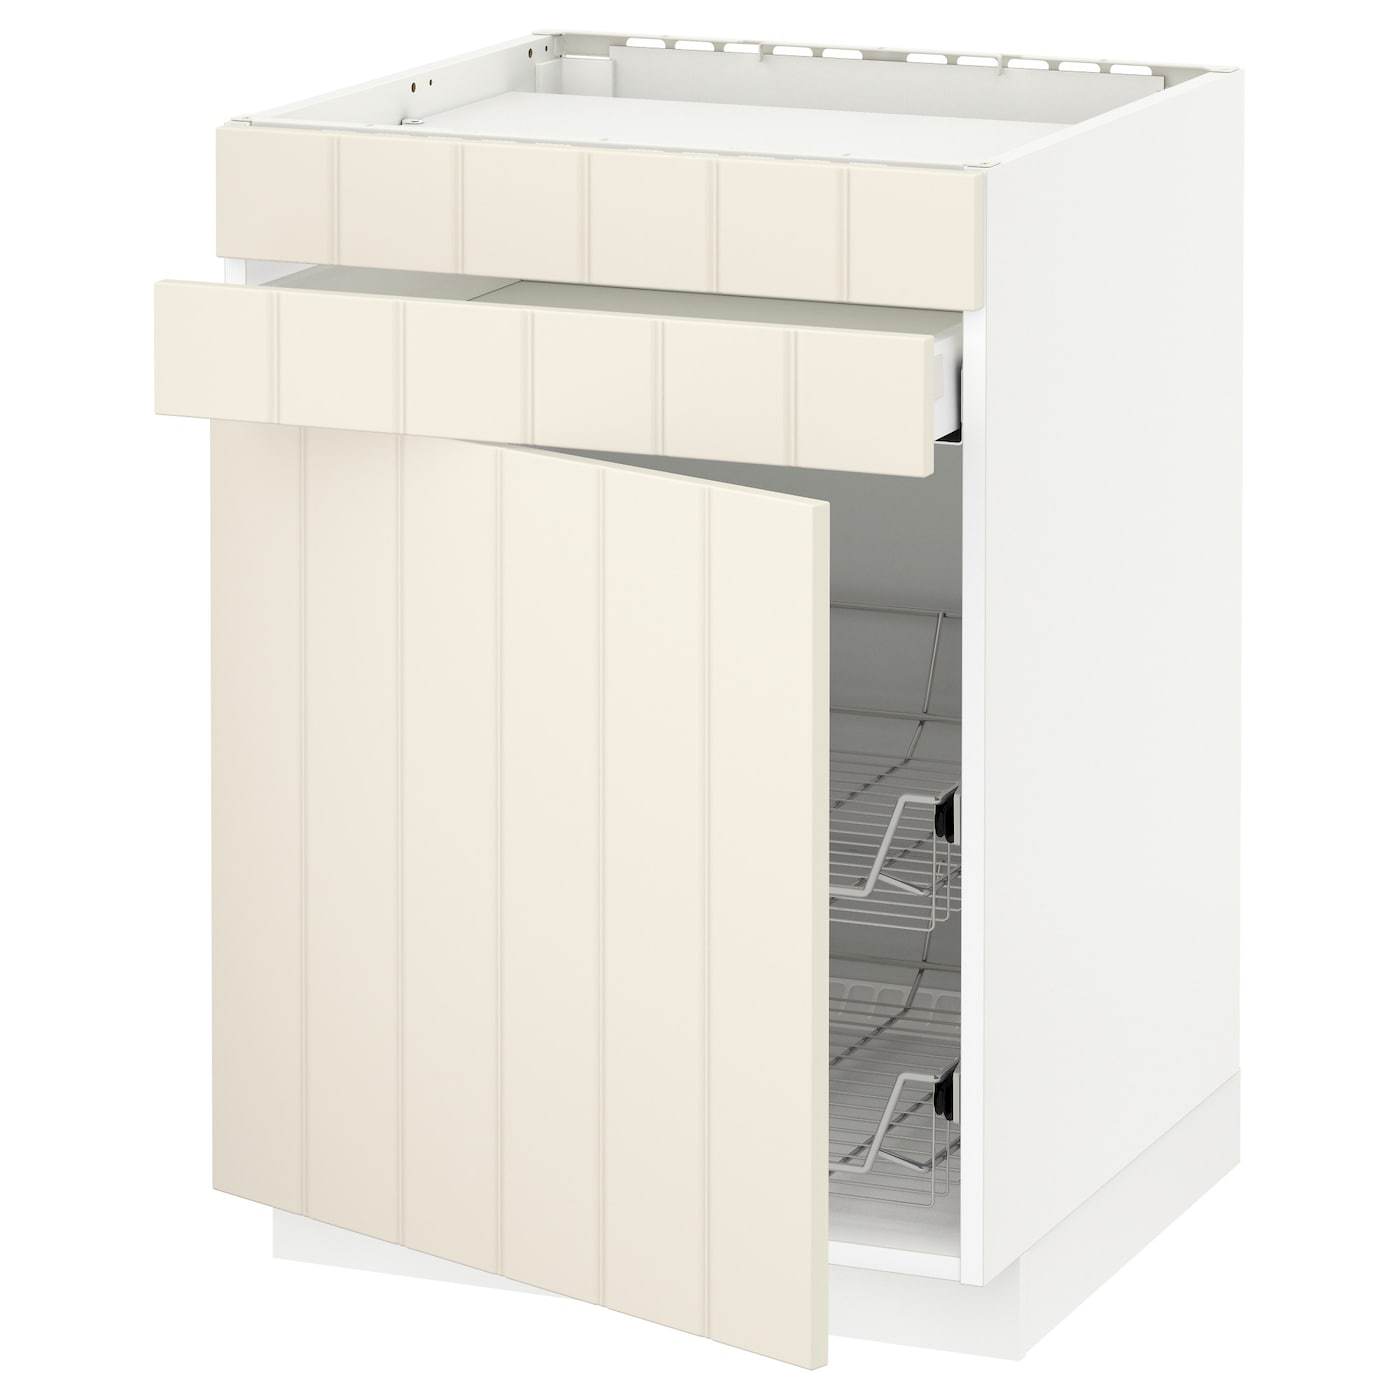 IKEA METOD/MAXIMERA base cab f hob/drawer/2 wire bskts Smooth-running drawer with drawer stop.